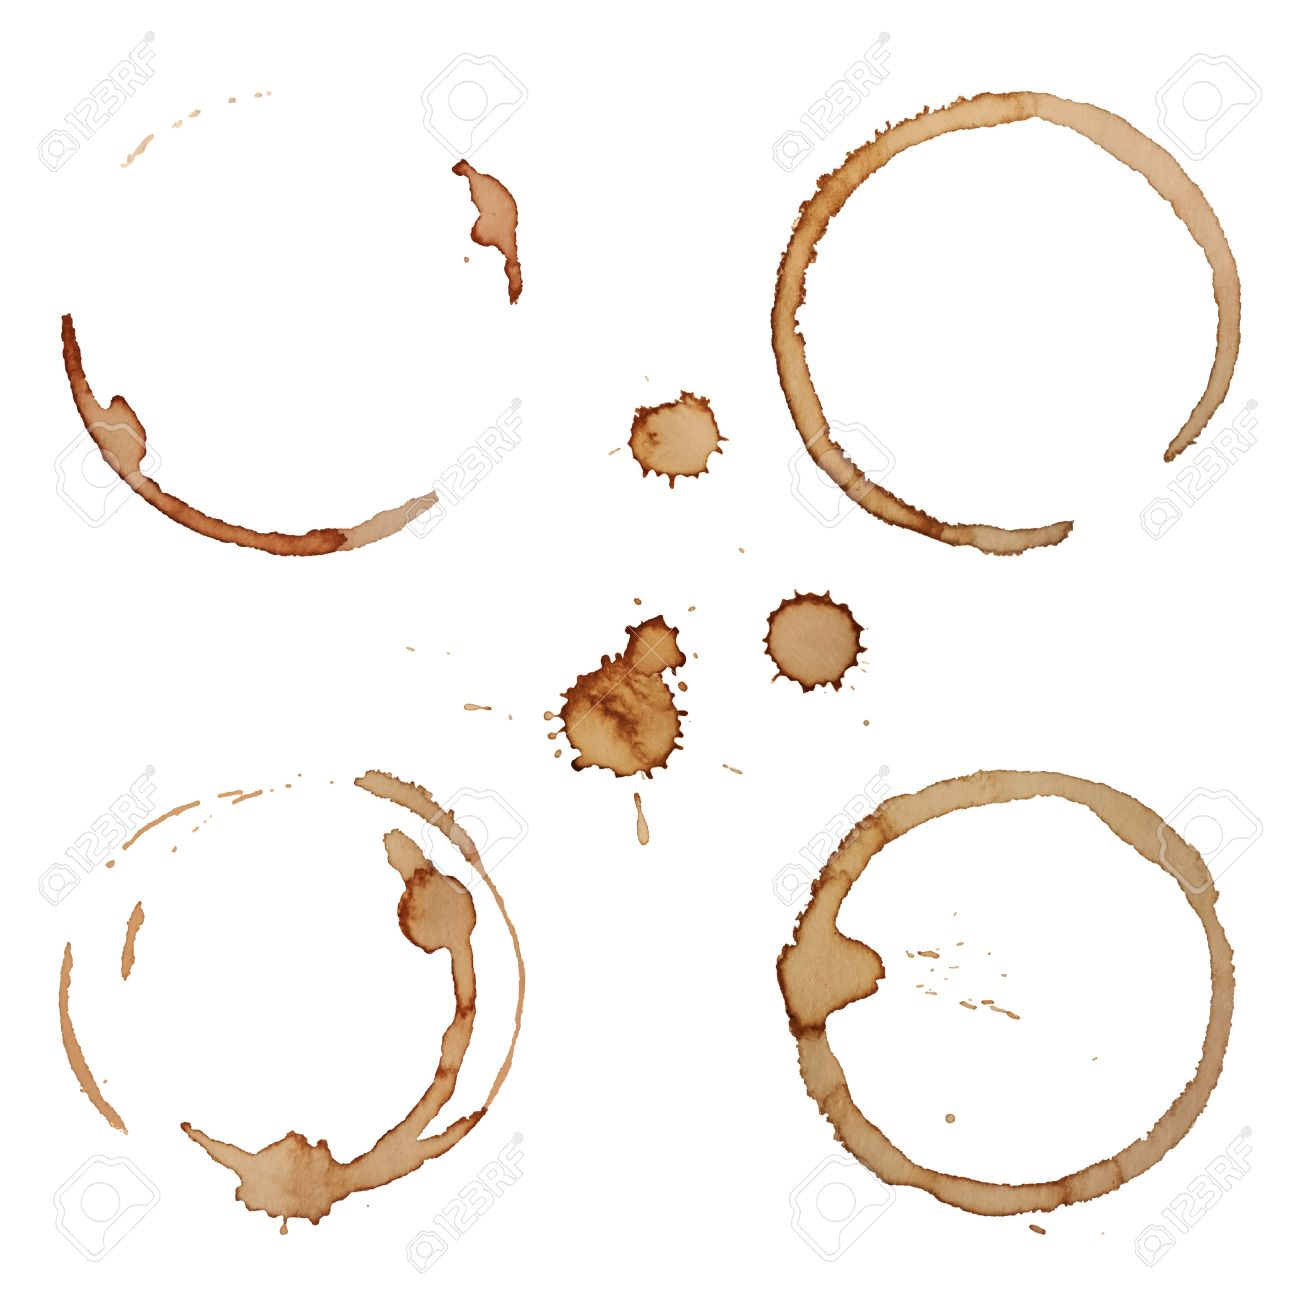 Vector Coffee Stain Rings Set Isolated On White Background for Grunge Design - 35378180